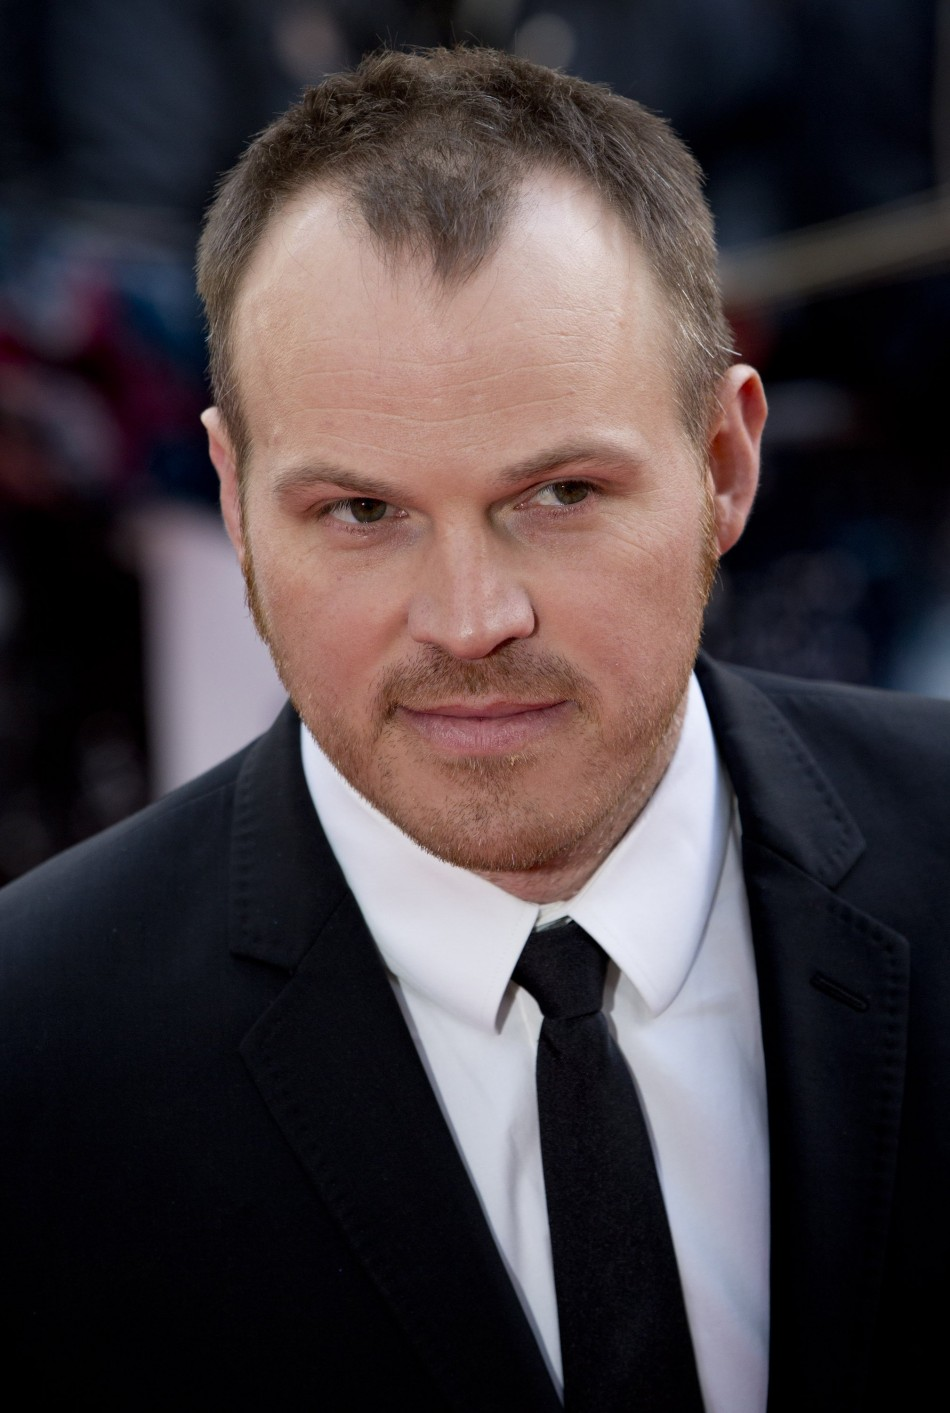 U.S. film director Webb arrives for the British premiere of quotThe Amazing Spider-Manquot at Leicester Square in London